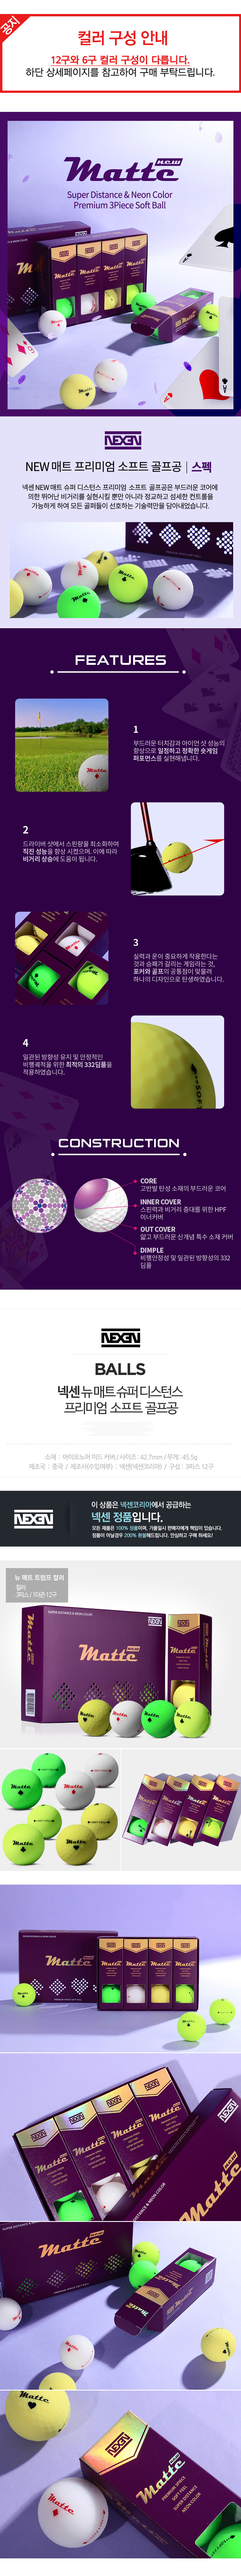 nexen_new_matte_ball_20.jpg